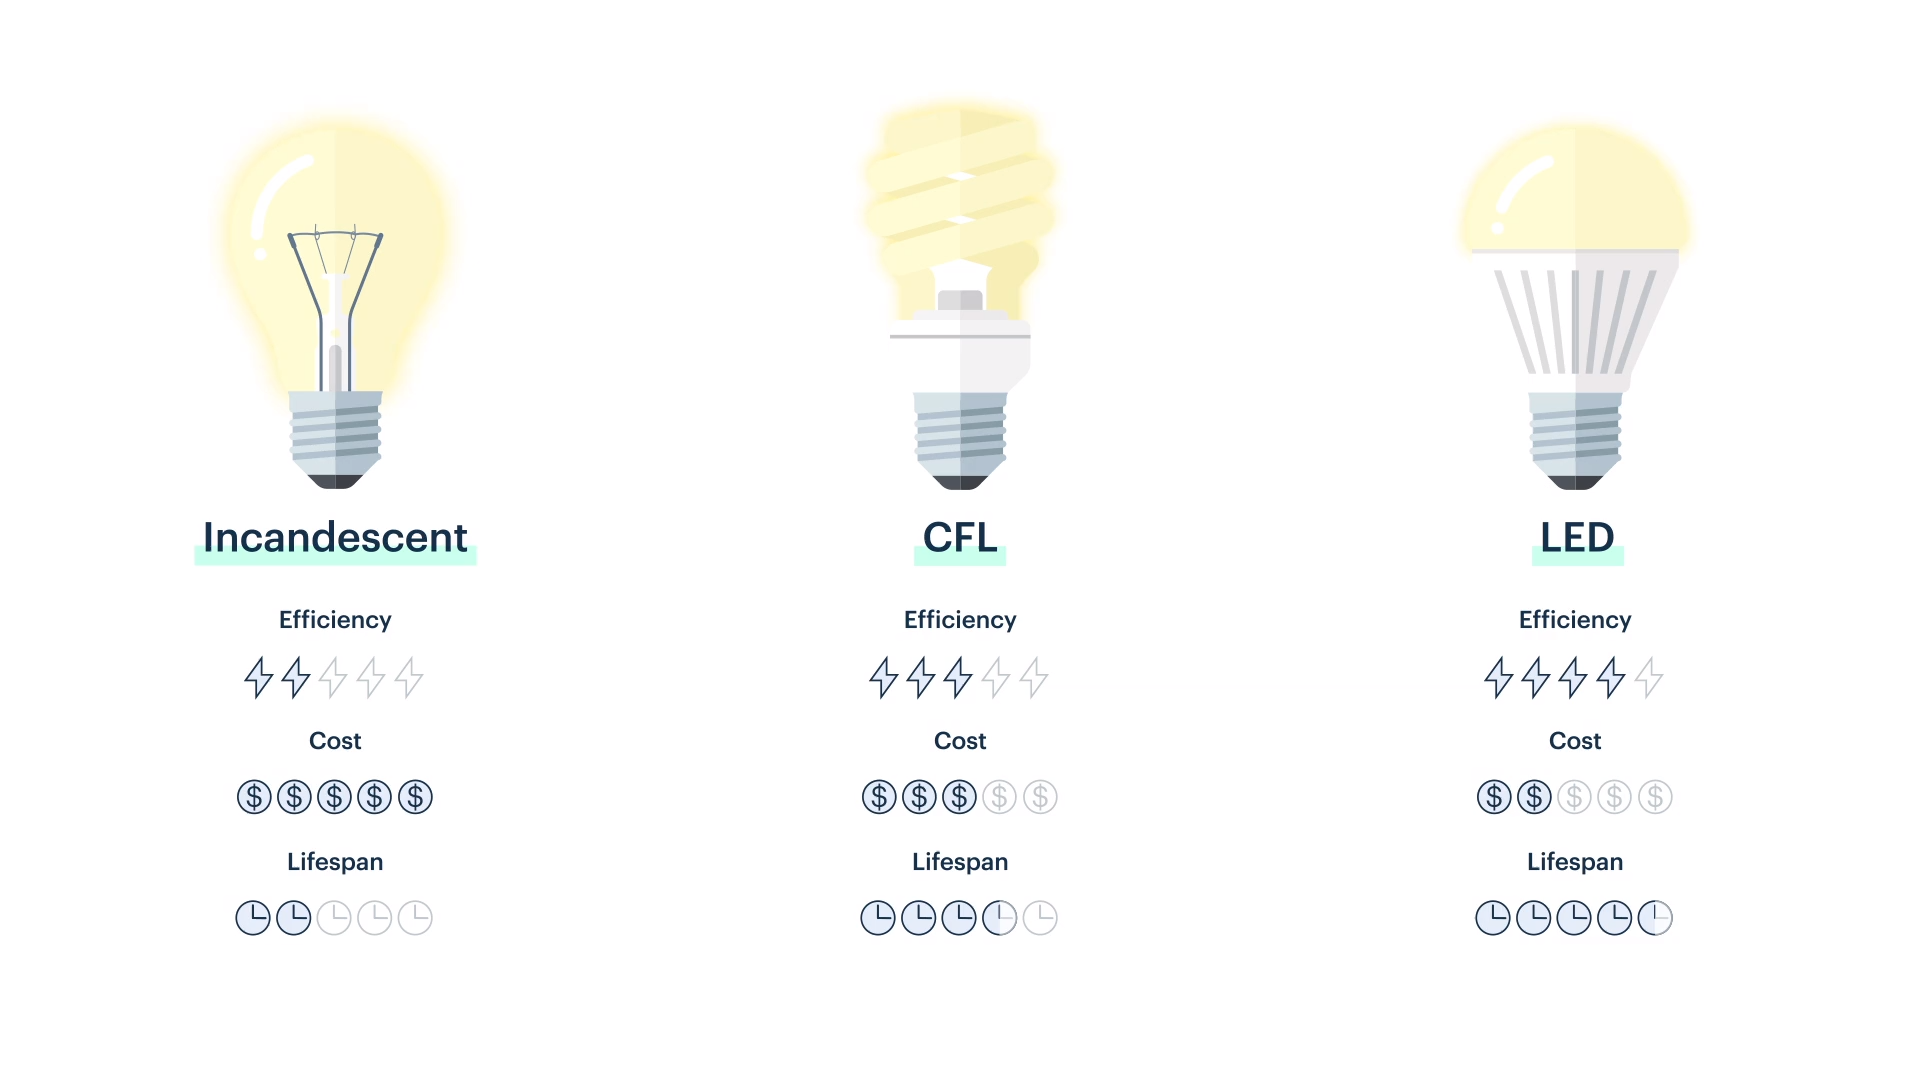 Chart comparing efficiency, cost, and lifespan of incandescent, CFL, and LED bulbs